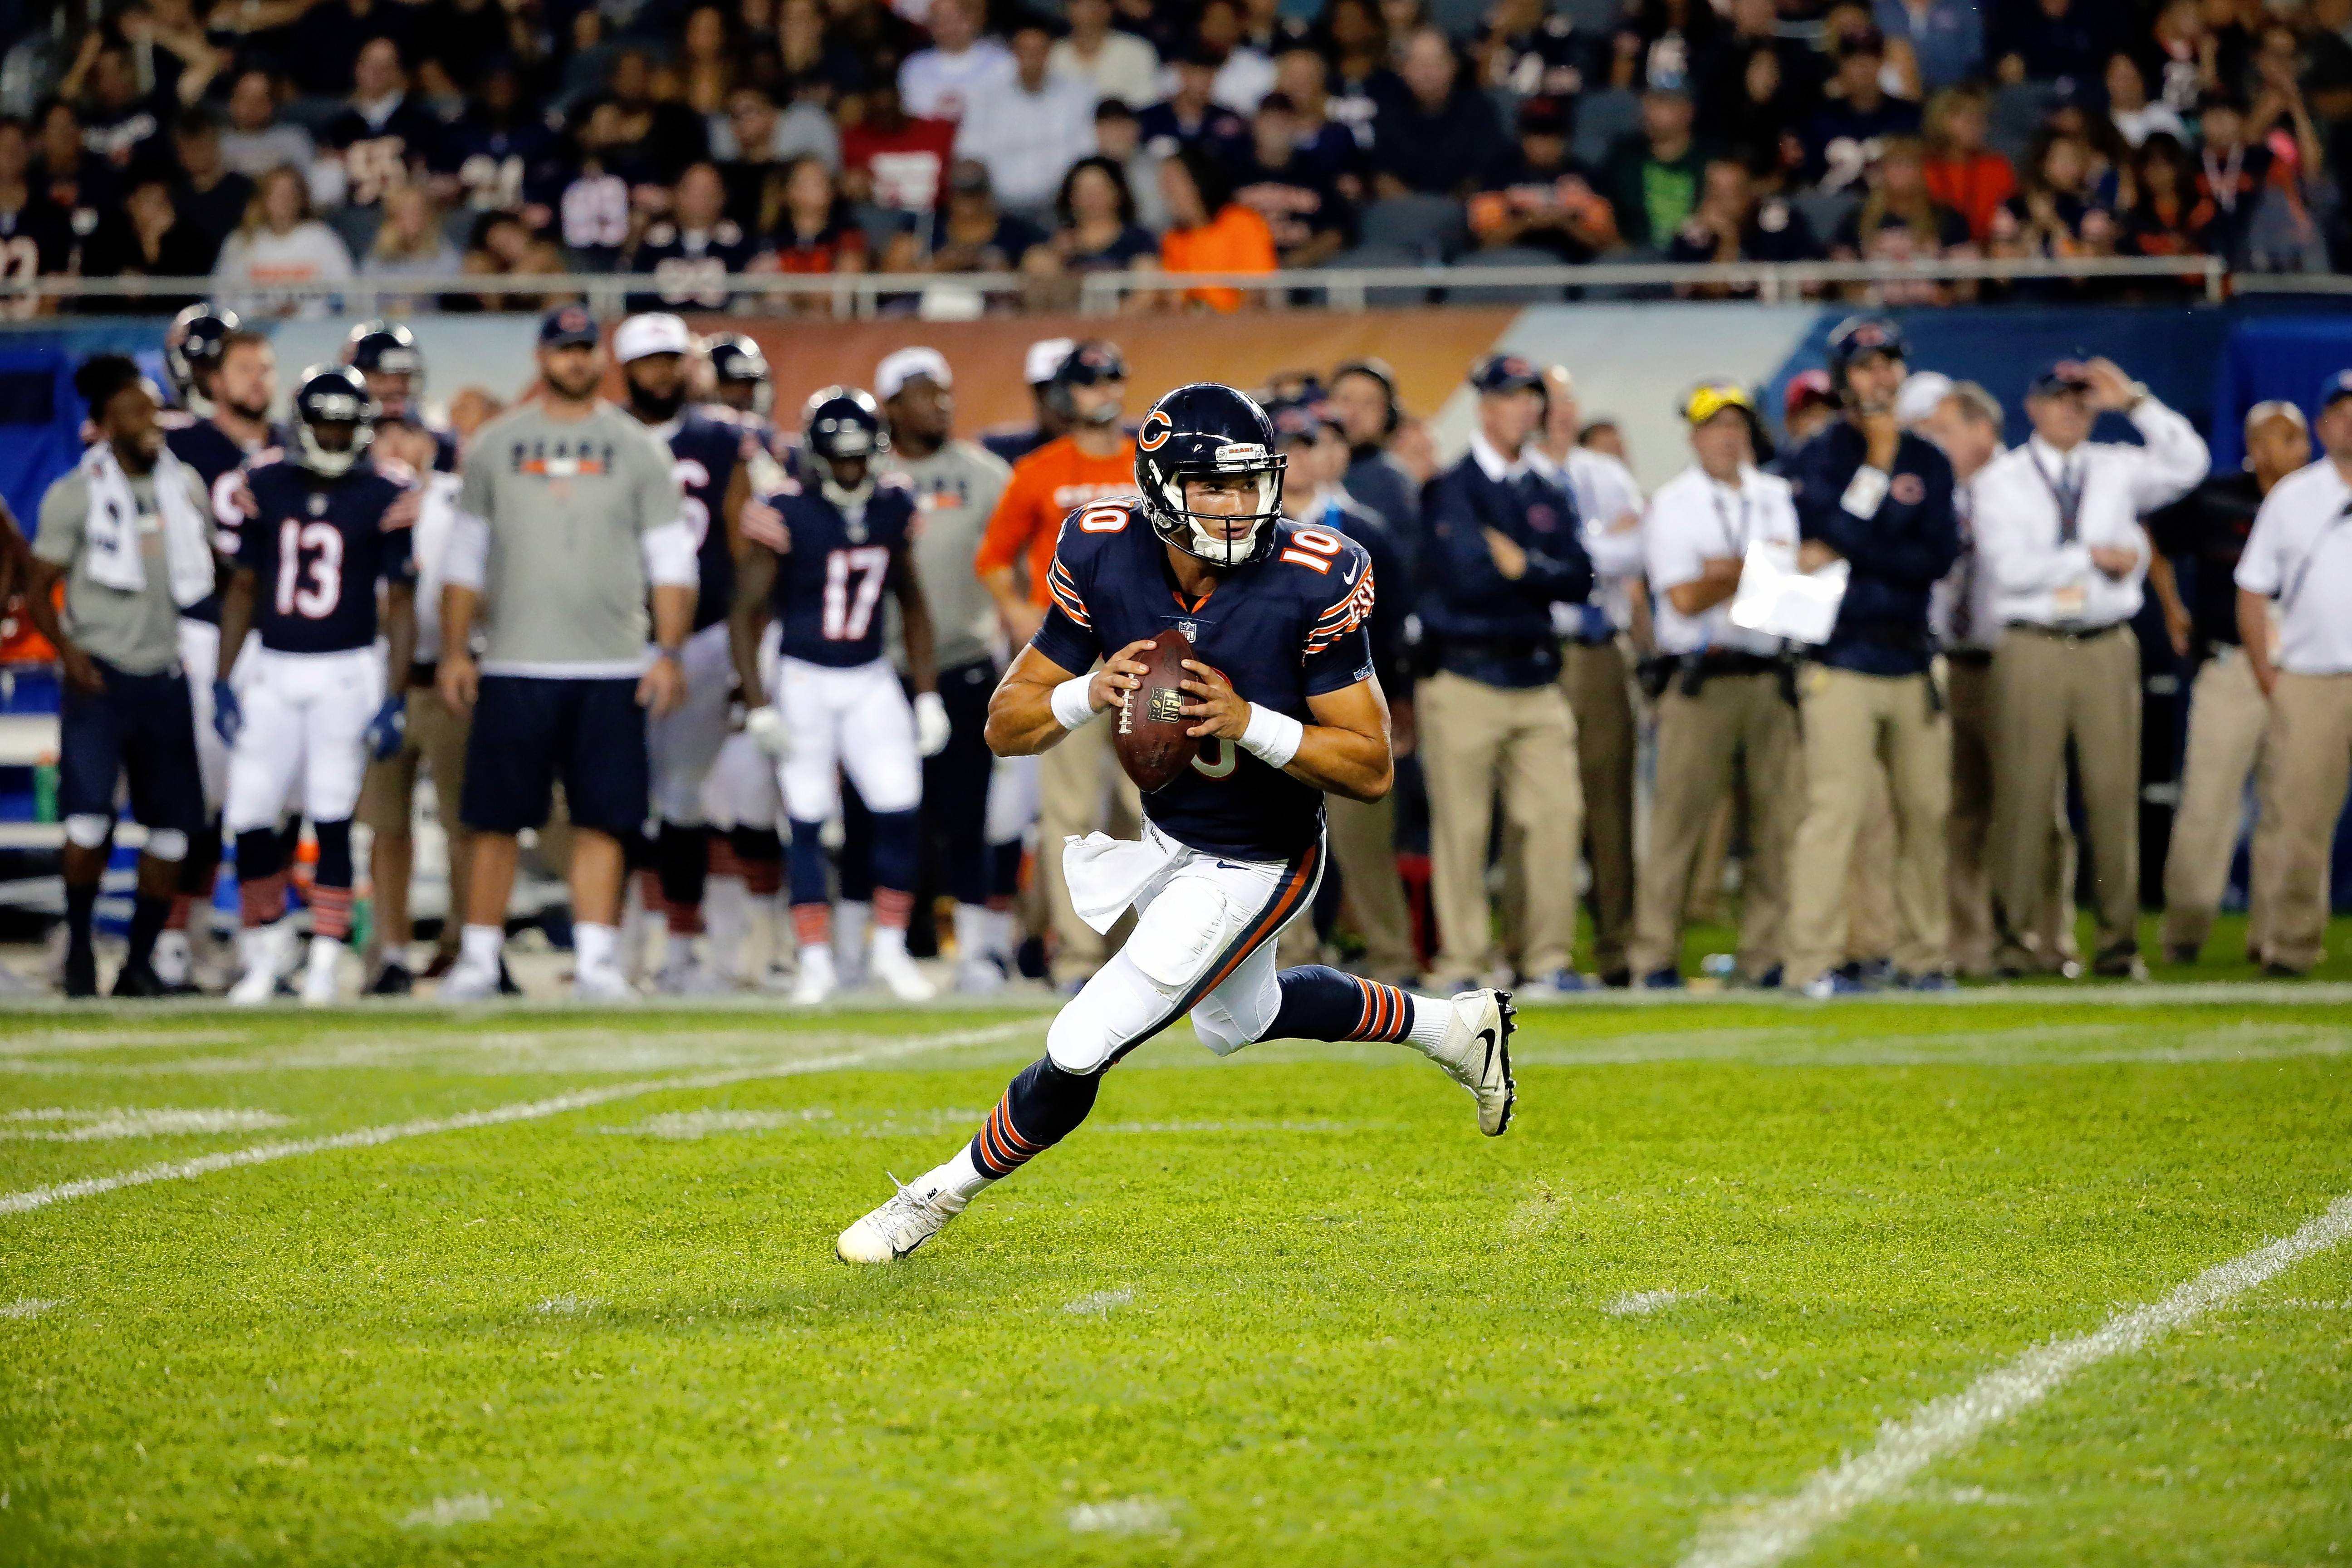 Associated Press Bears quarterback Mitch Trubisky scrambles during the second half of the preseason game against the Denver Broncos. Trubisky, who will get limited snaps with the first team in Sunday's third preseason game, says he's more concerned with his own development than with chasing the starting job.